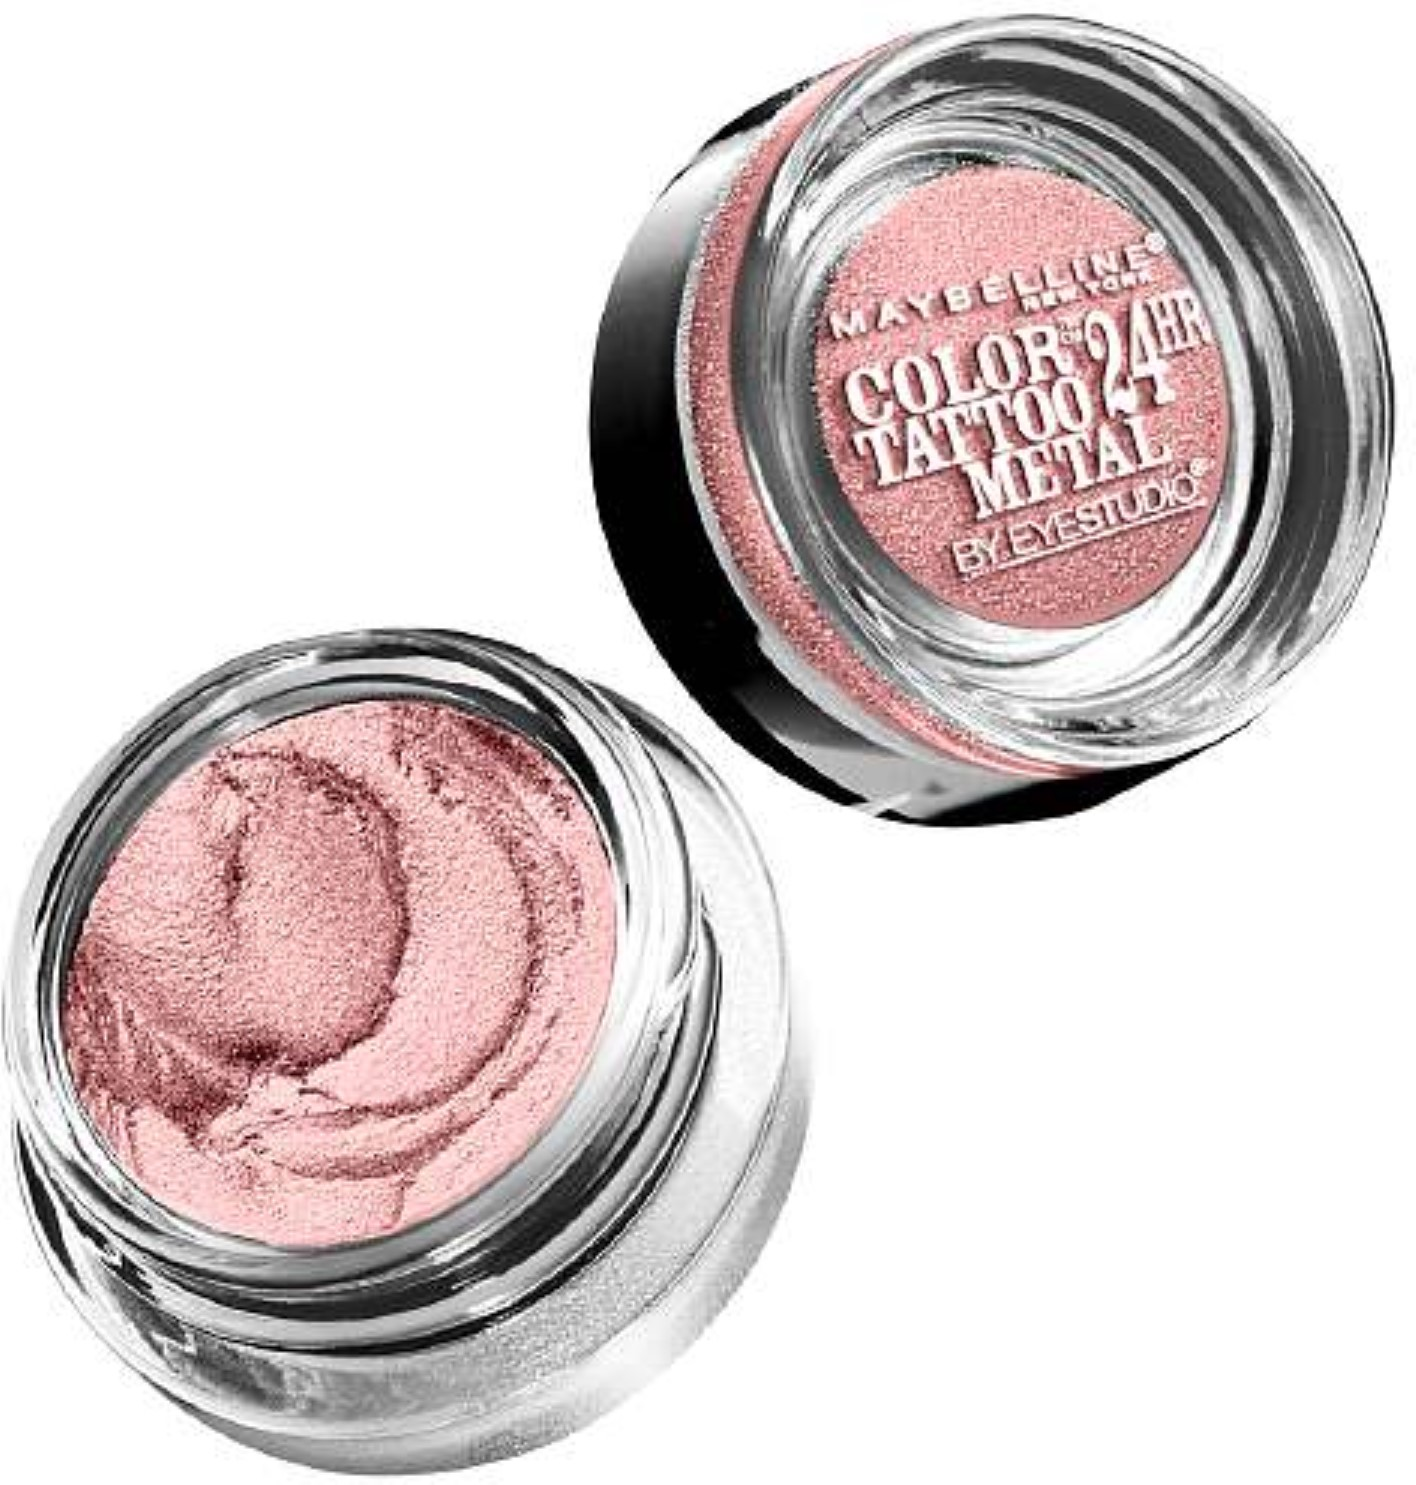 Maybelline New York Color Tattoo 24Hr Leather by EyeStudio Cream Gel Eyeshadow, Inked In Pink 0.14 oz (Pack of 2)